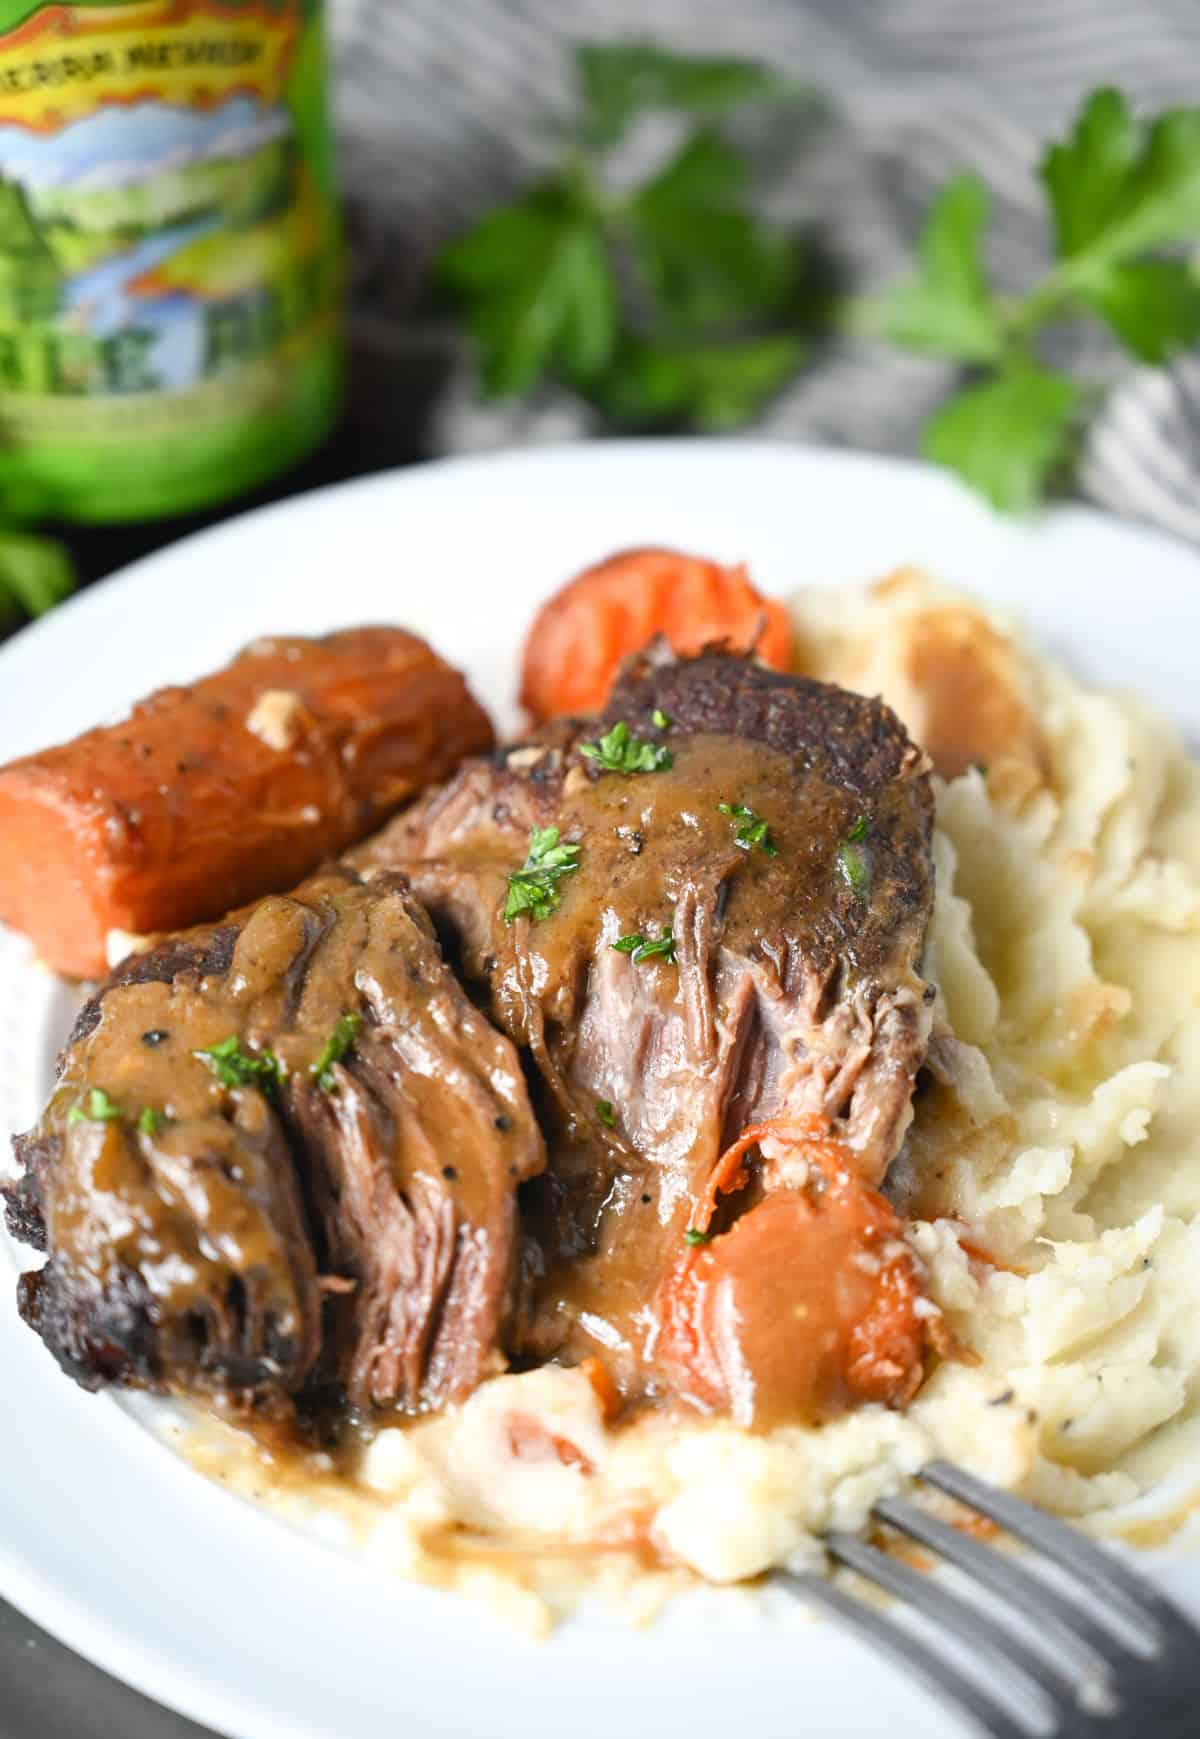 Slow cooker pot roast, mashed potatoes and roasted carrots on a white plate.